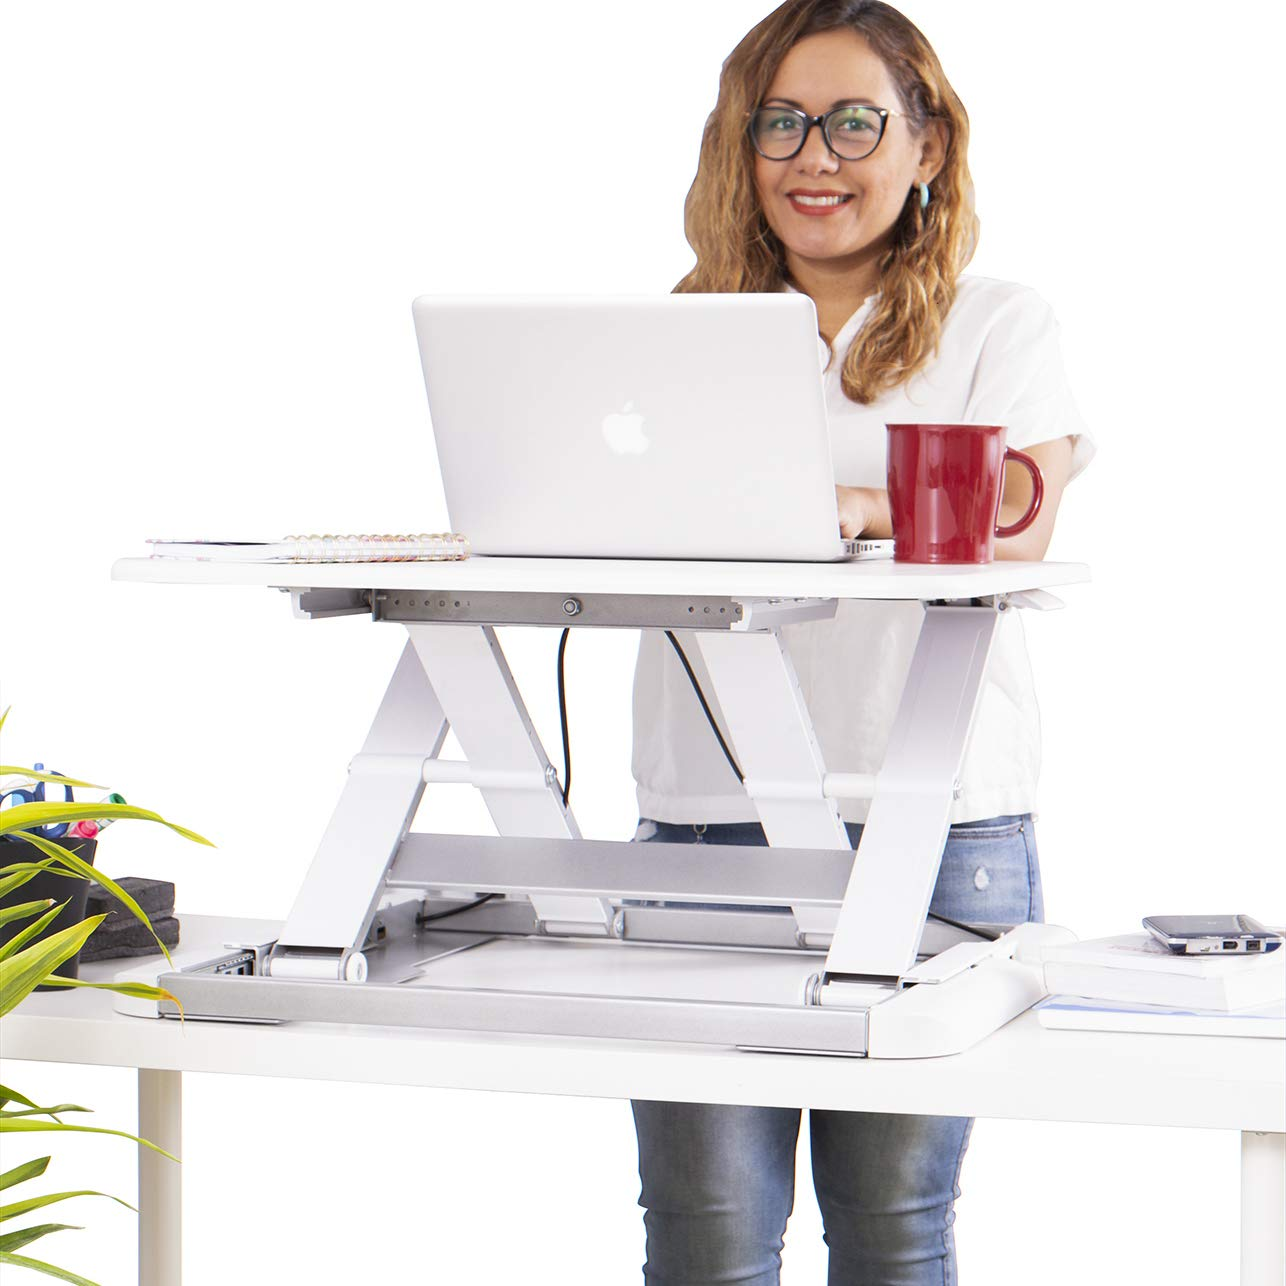 TOTALPACK Standing Desk Sit Stand Desk Converter - Anti Fatigue Height Adjustable Workstation, Extra Large 26.5'' x 22.2'' Desktop Surface, Easy to Raise & Lower - Pre-Assembled, White by TOTALPACK